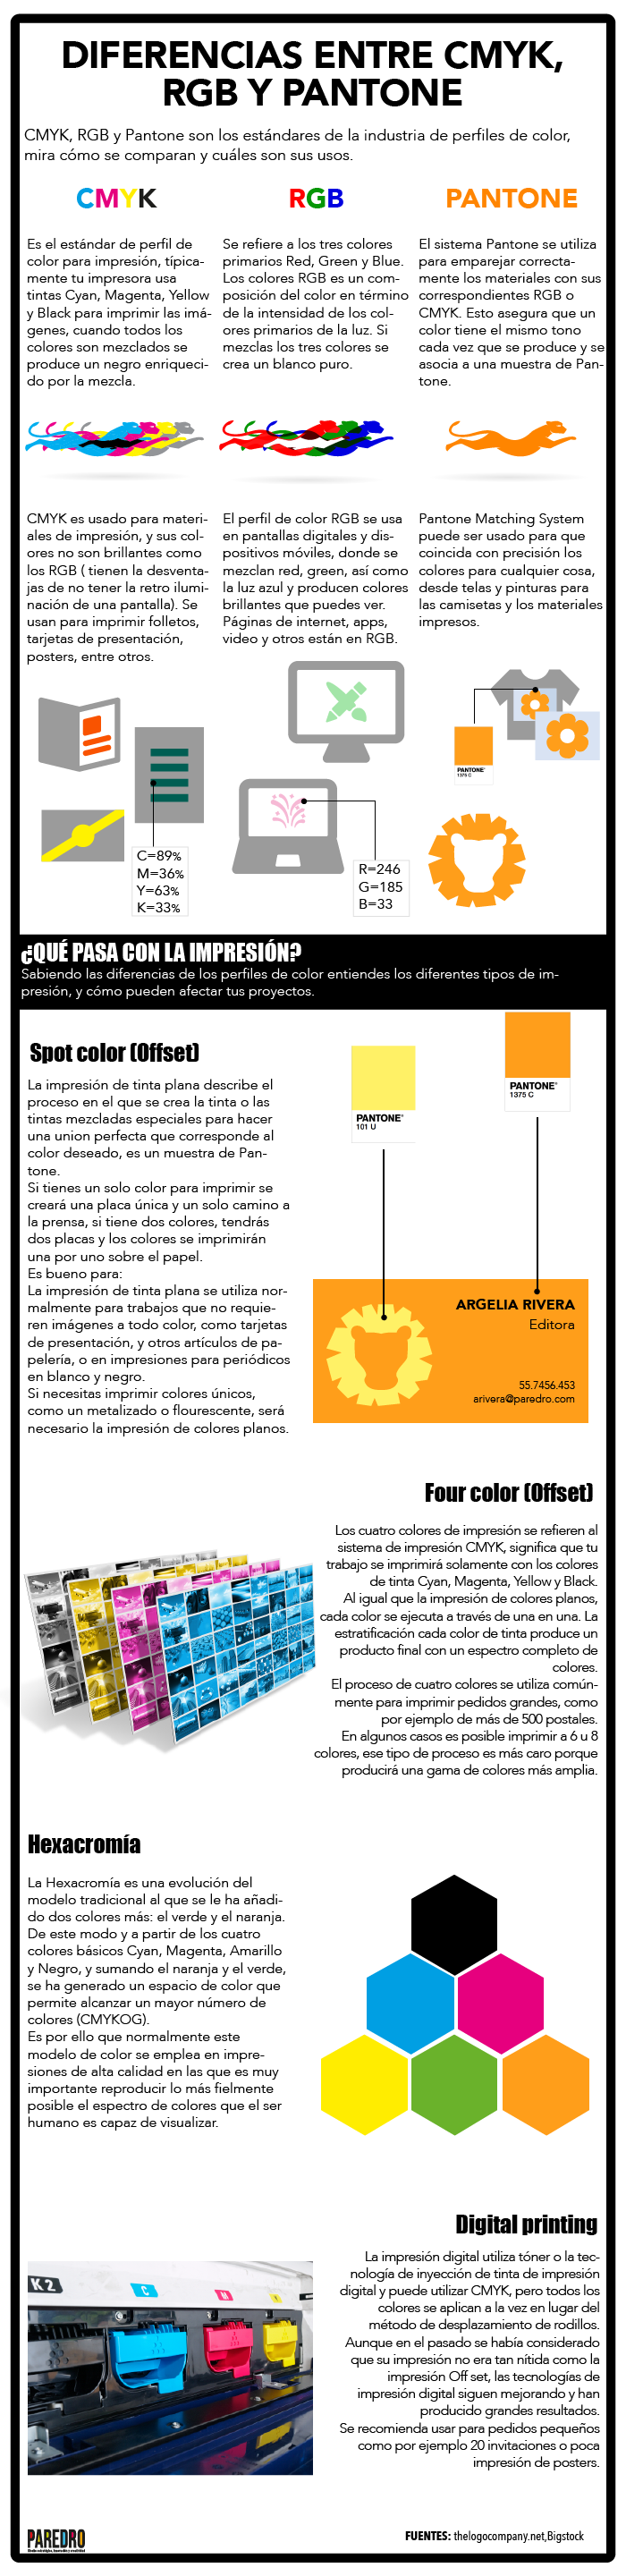 Color: Pantone vs CMYK vs RGB